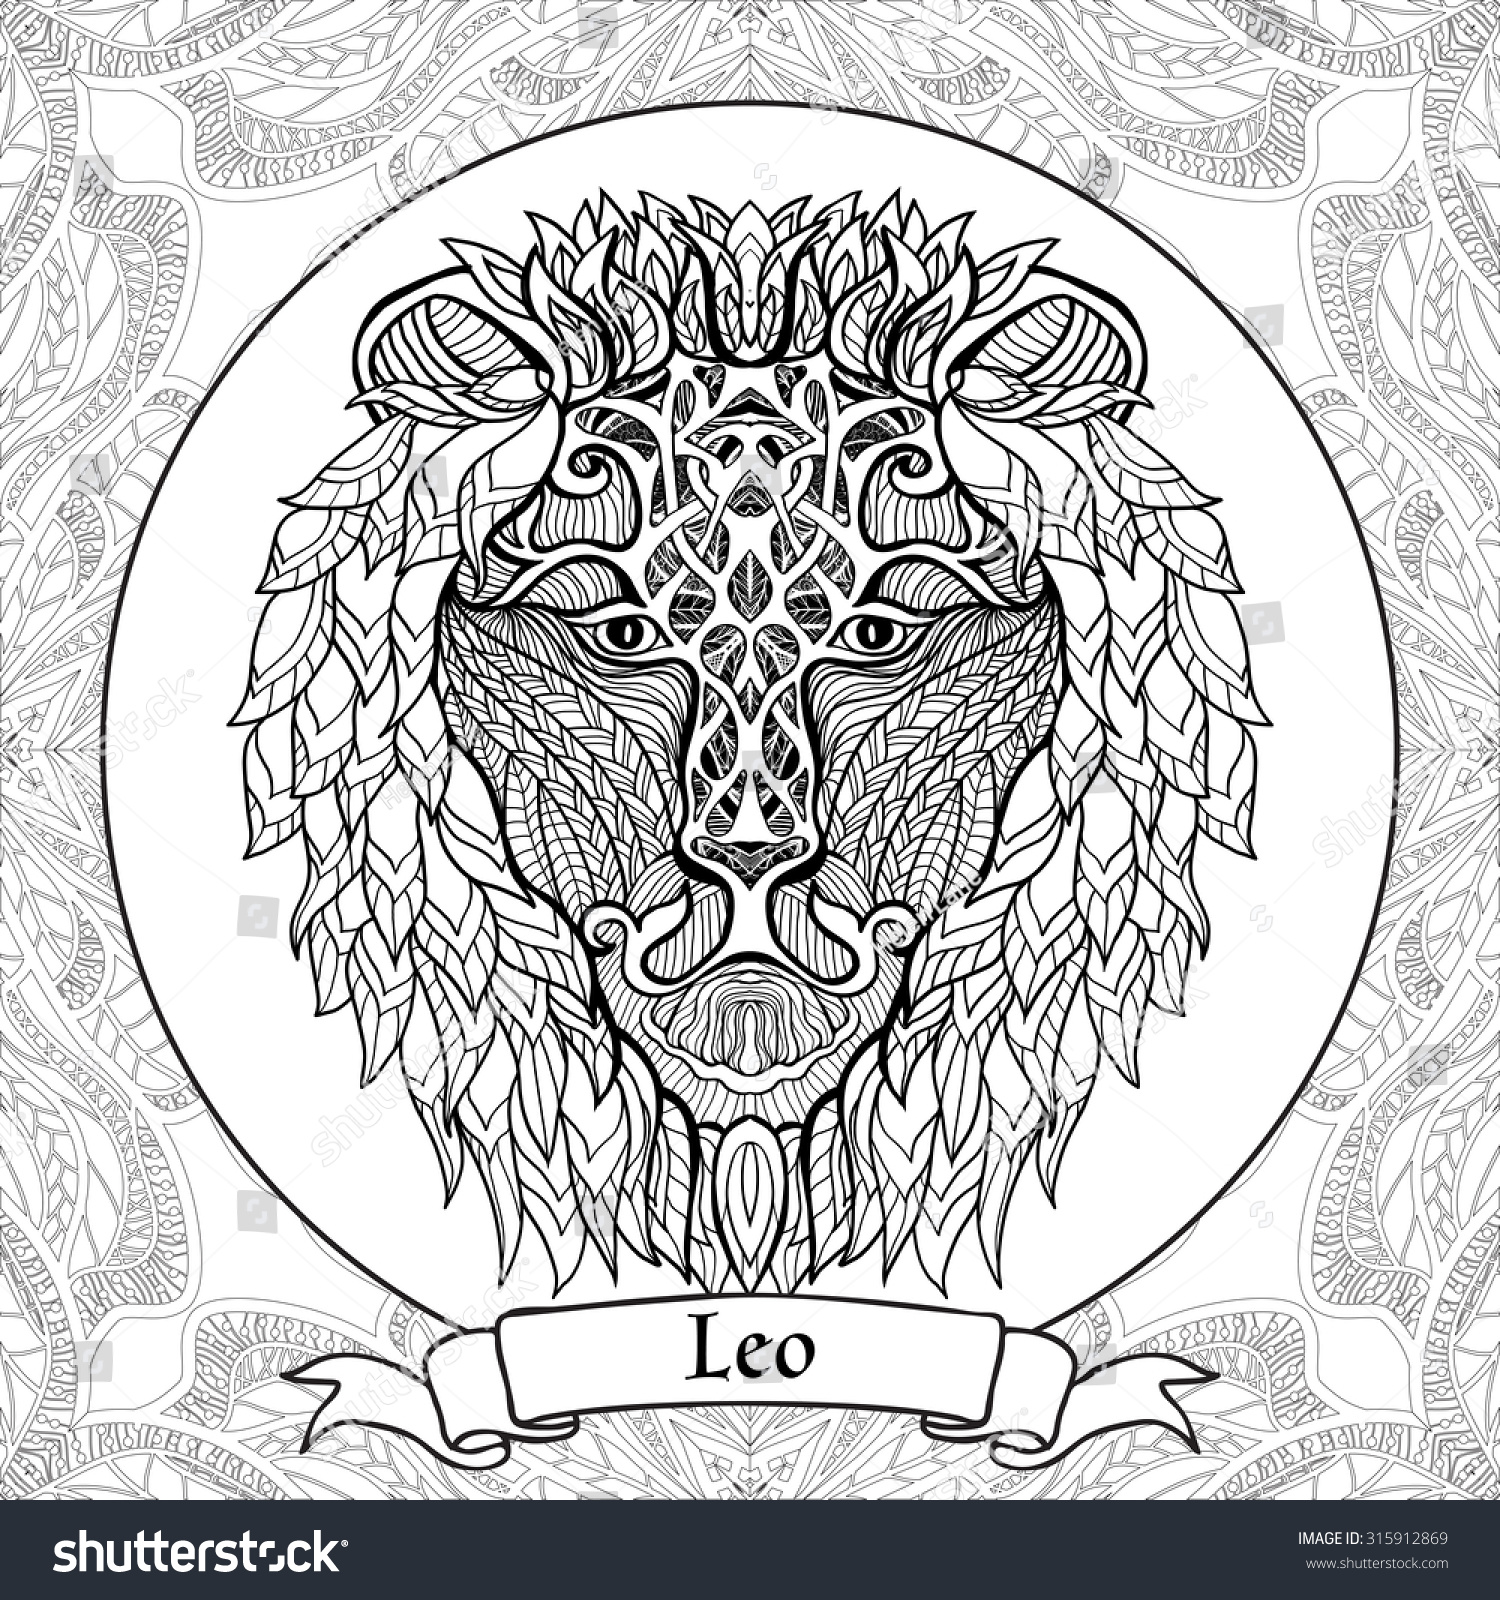 Coloring Page Pattern Zodiac Sign Leo Stock Vector 315912869